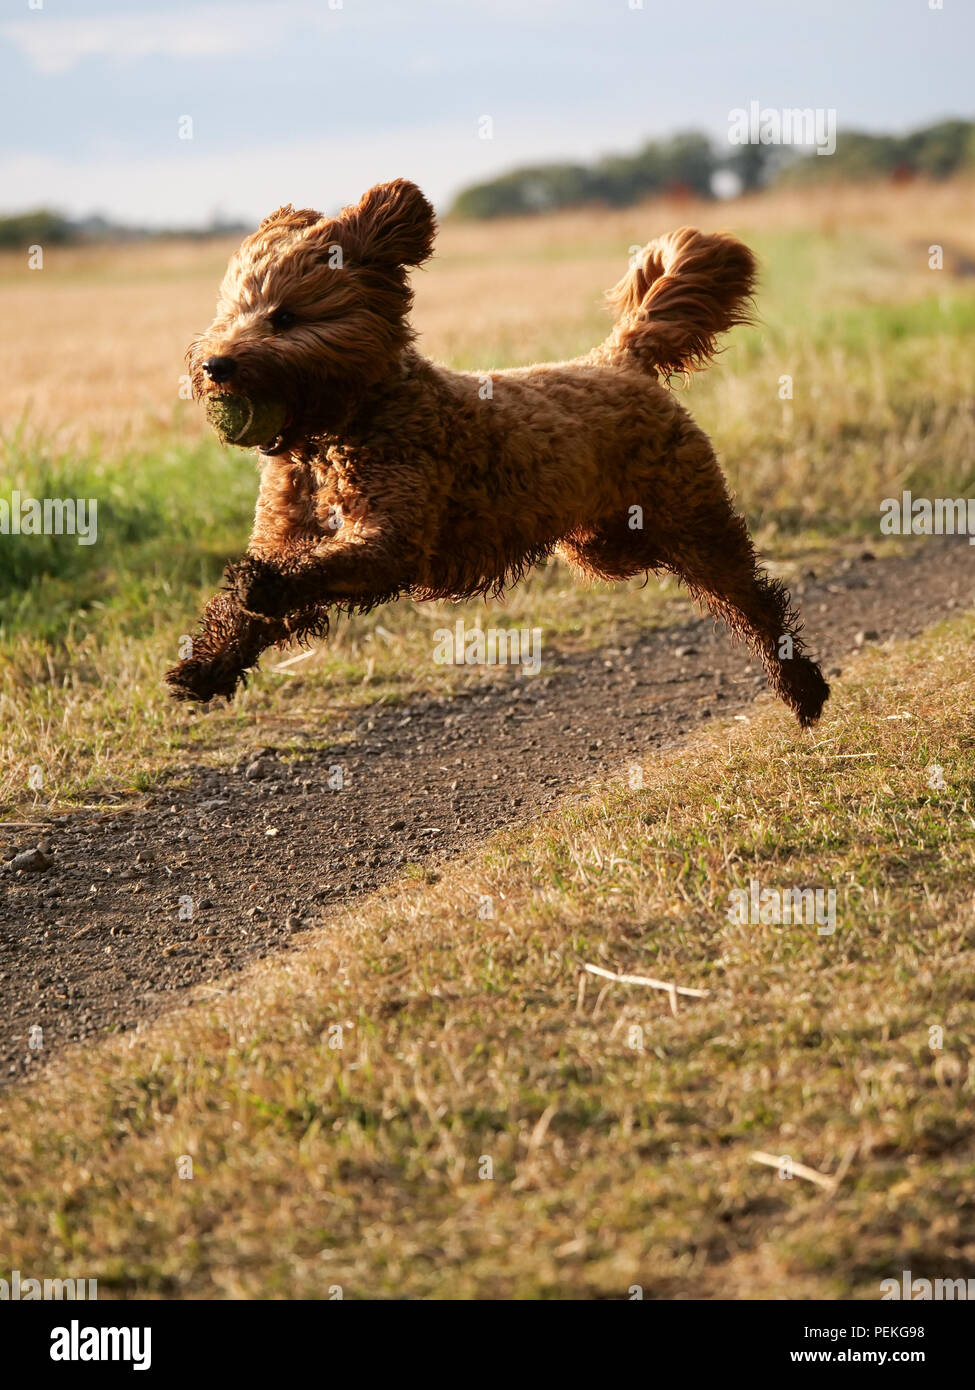 Red haired Cockapoo dog leaping during play in the countryside, UK - Stock Image